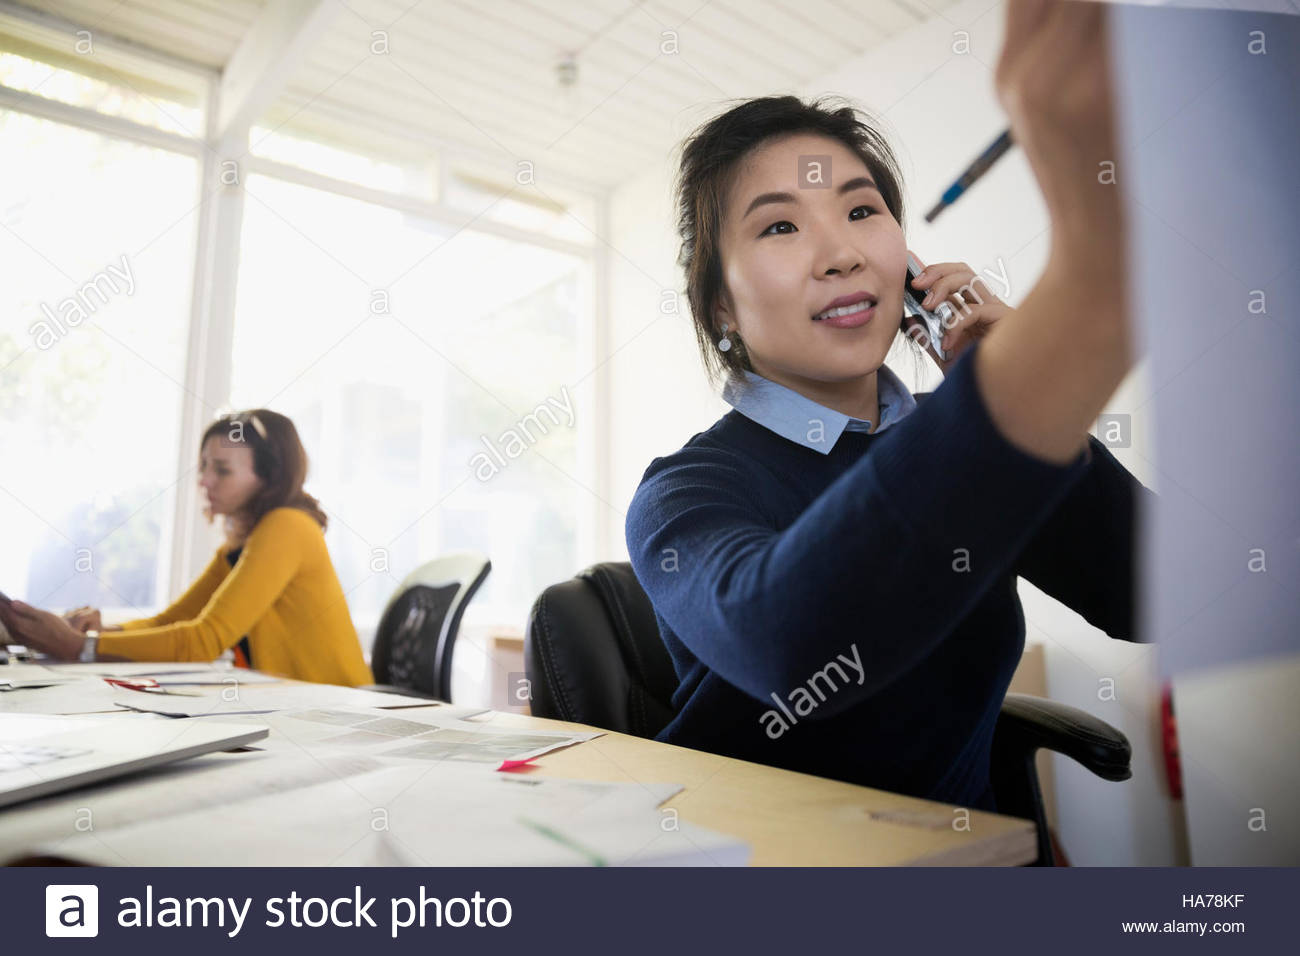 Female architect talking on telephone in office - Stock Image